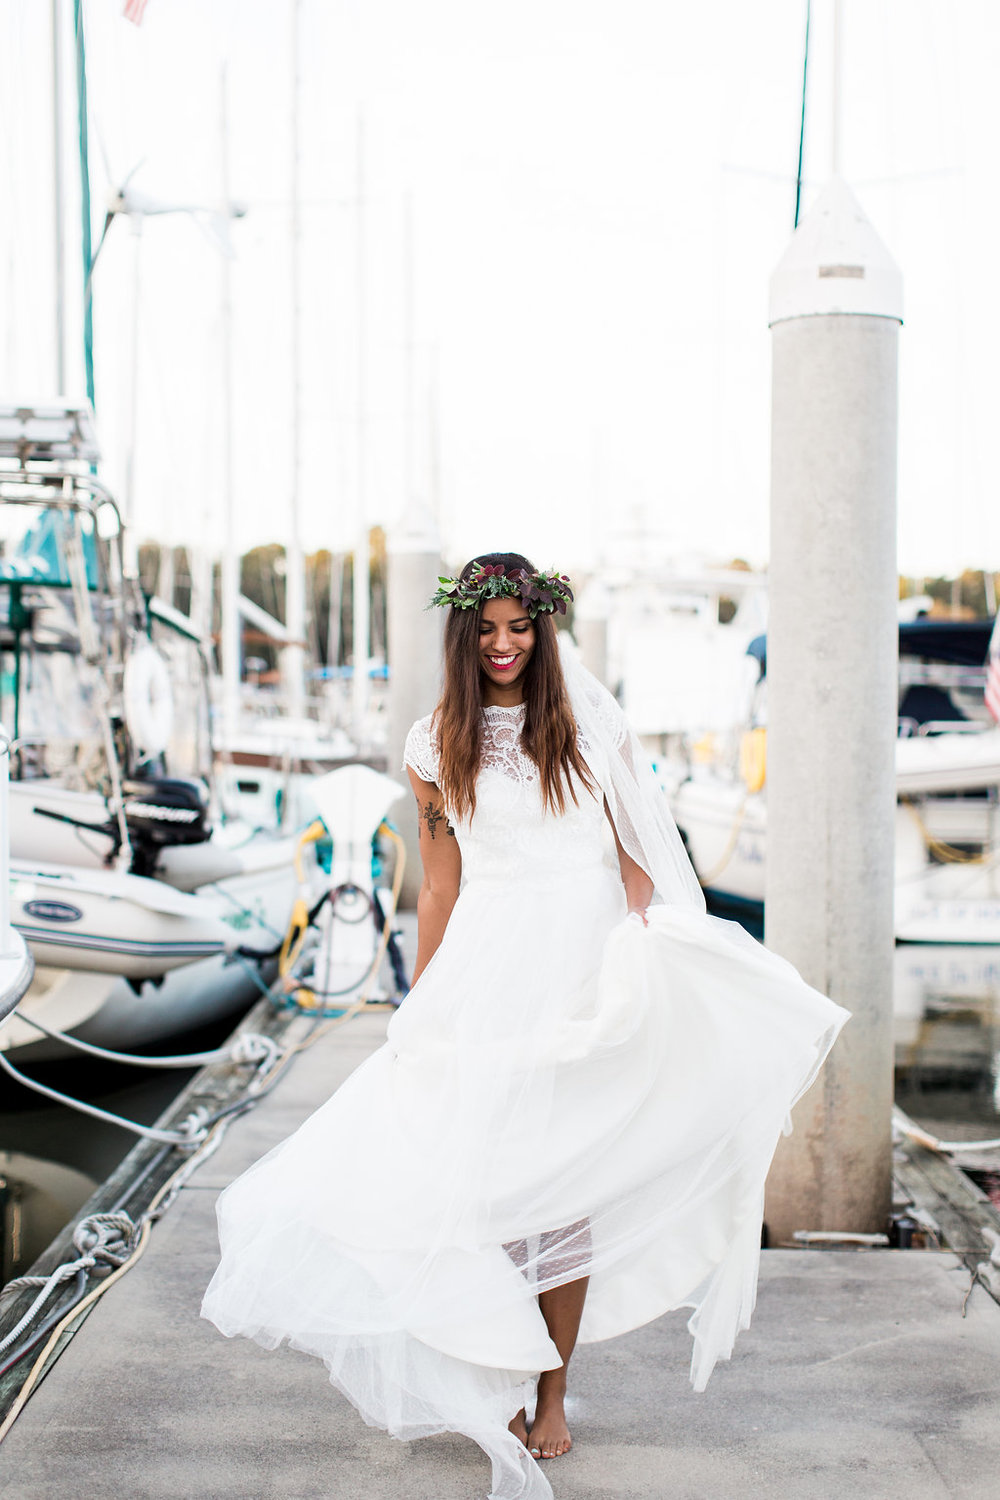 apt-b-photography-ti-adora-7655-point-desprit-wedding-dress-swiss-dot-wedding-dress-marina-wedding-coastal-wedding-ivory-and-beau-bridal-boutique-savannah-wedding-dresses-savannah-bridal-gowns-adele-amelia-savanah-florist-16.jpg